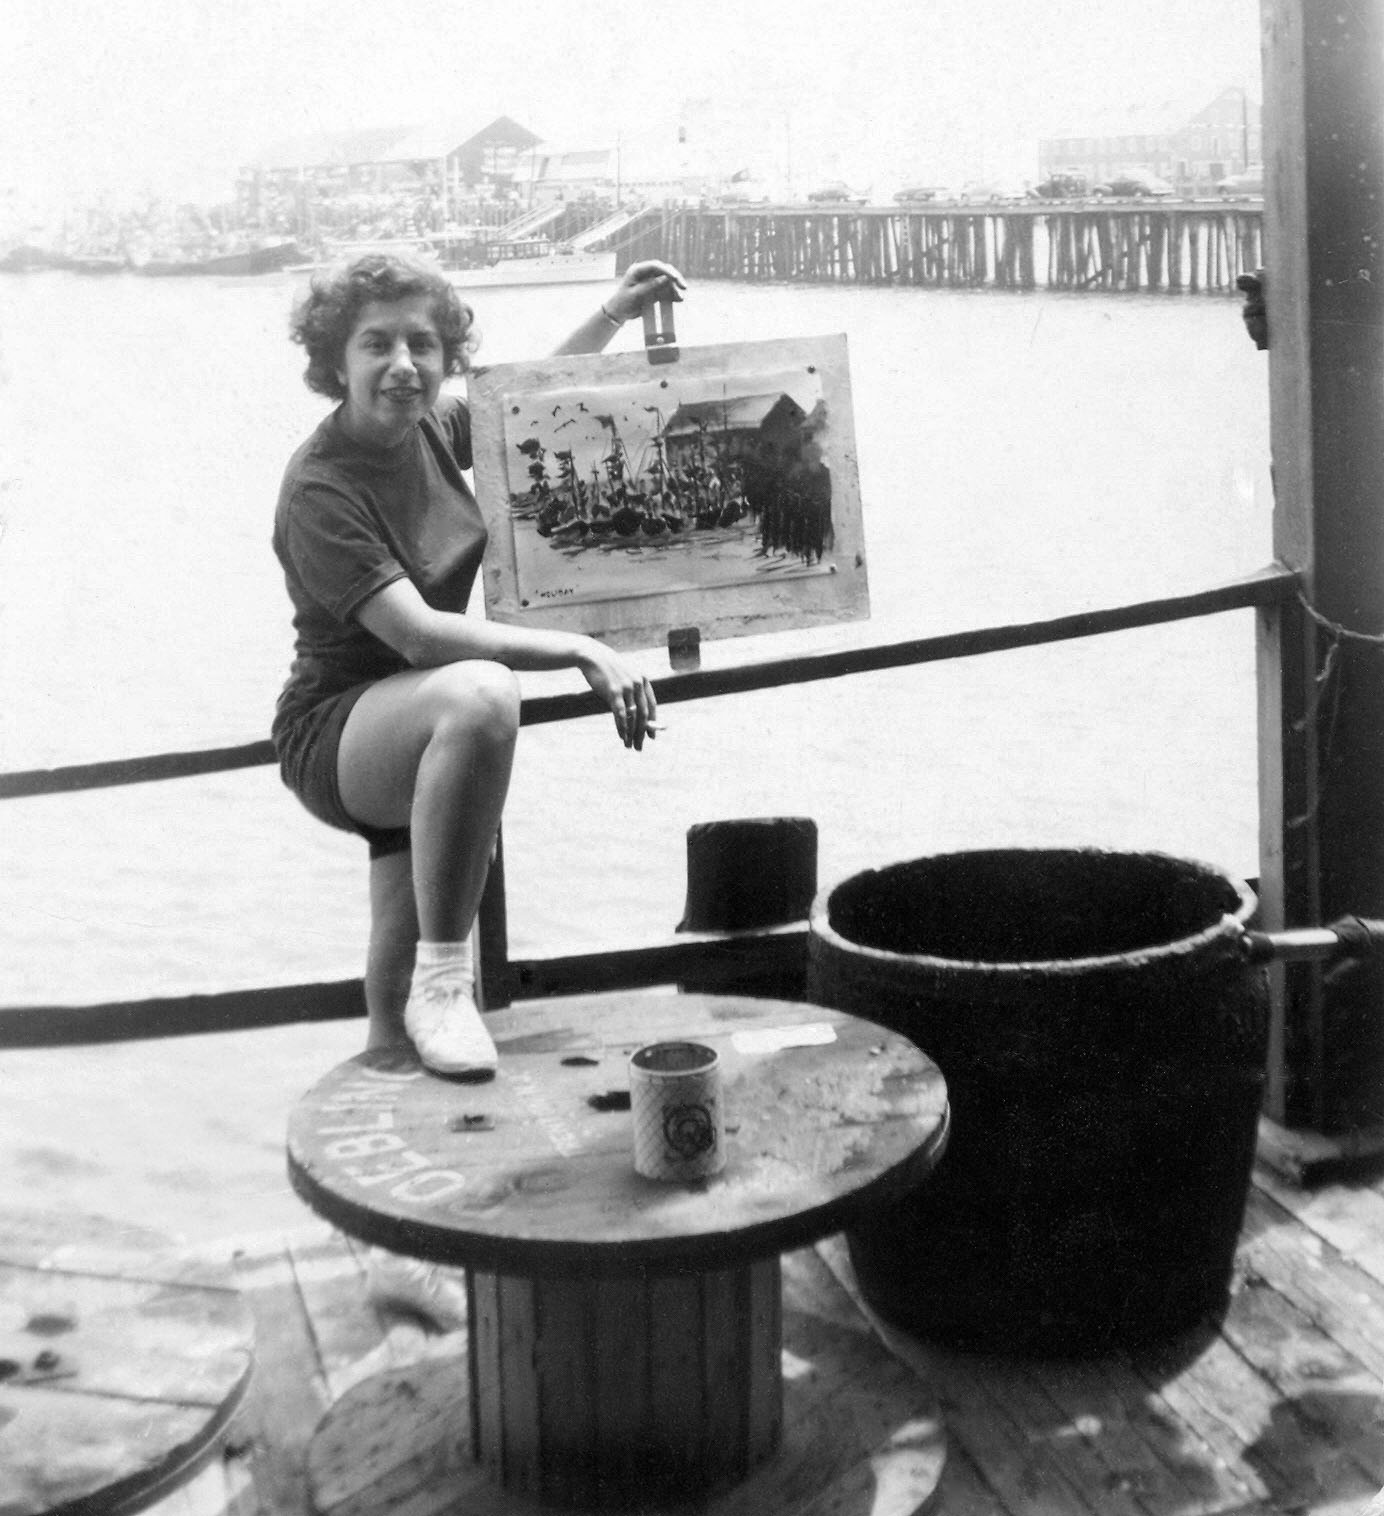 Irene at Provincetown, MA, 1960s.